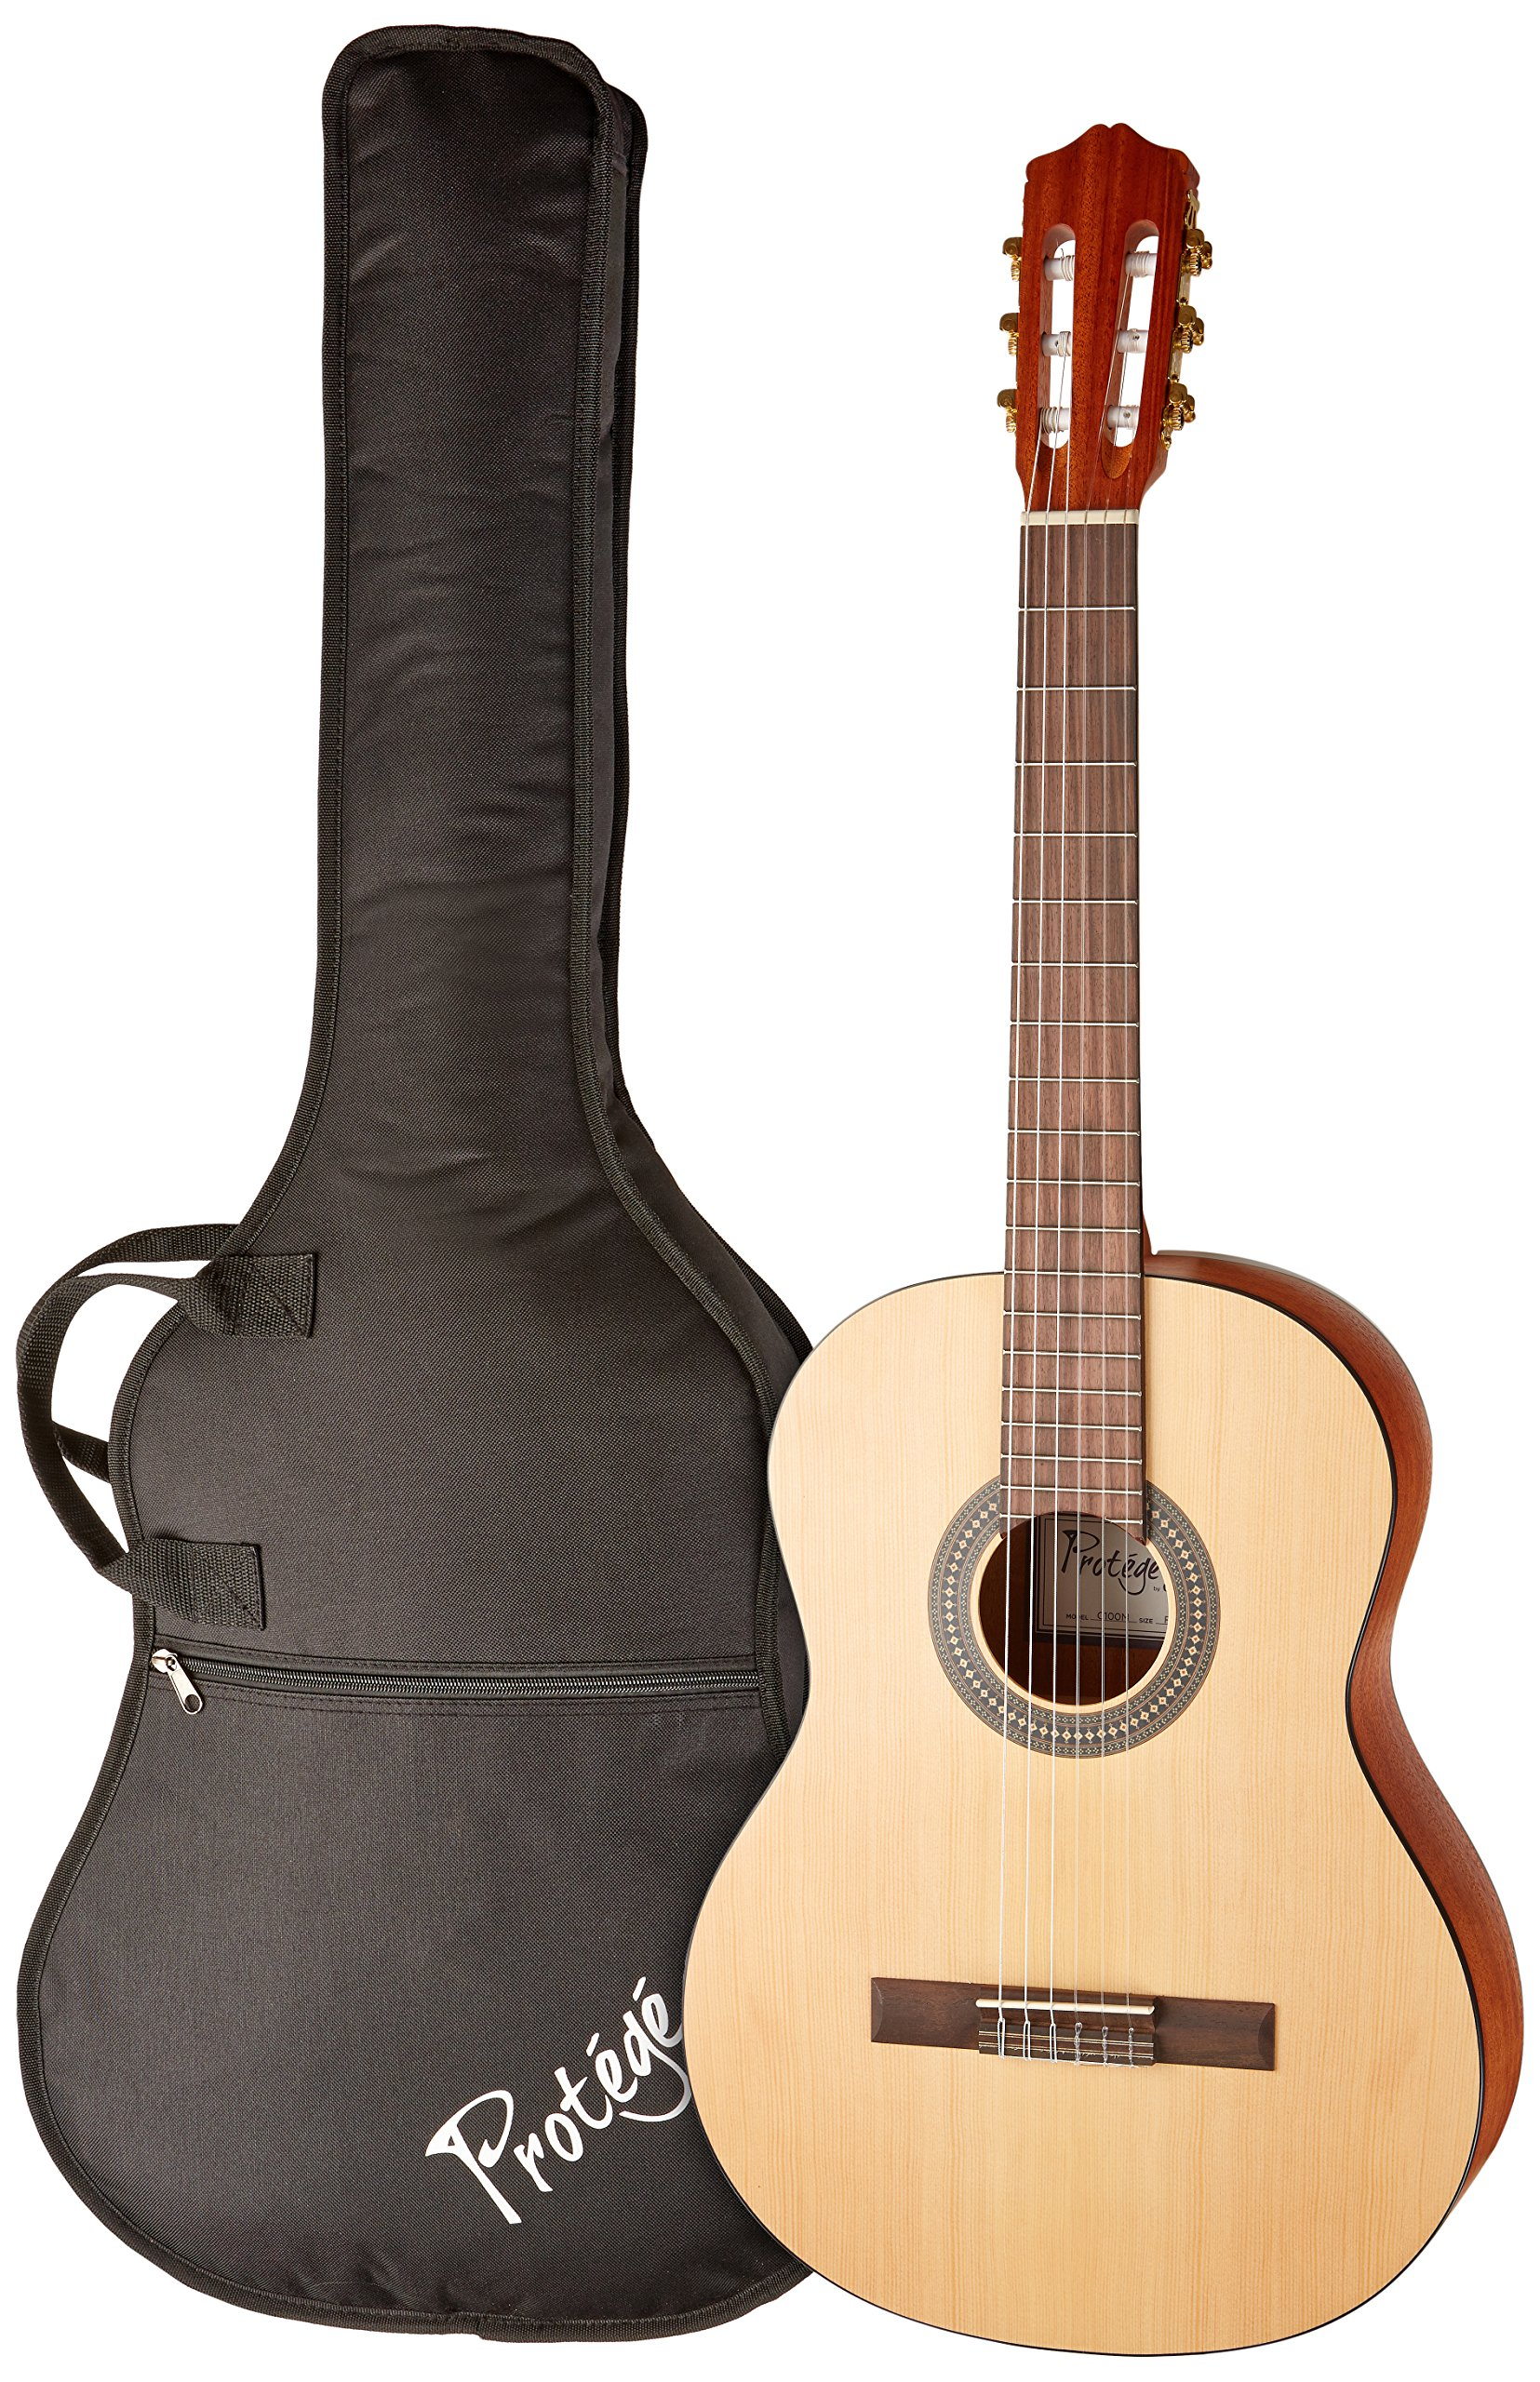 Protege by Cordoba C100M Full Size Classical Guitar with Gig Bag and Tuner (Amazon Exclusive)